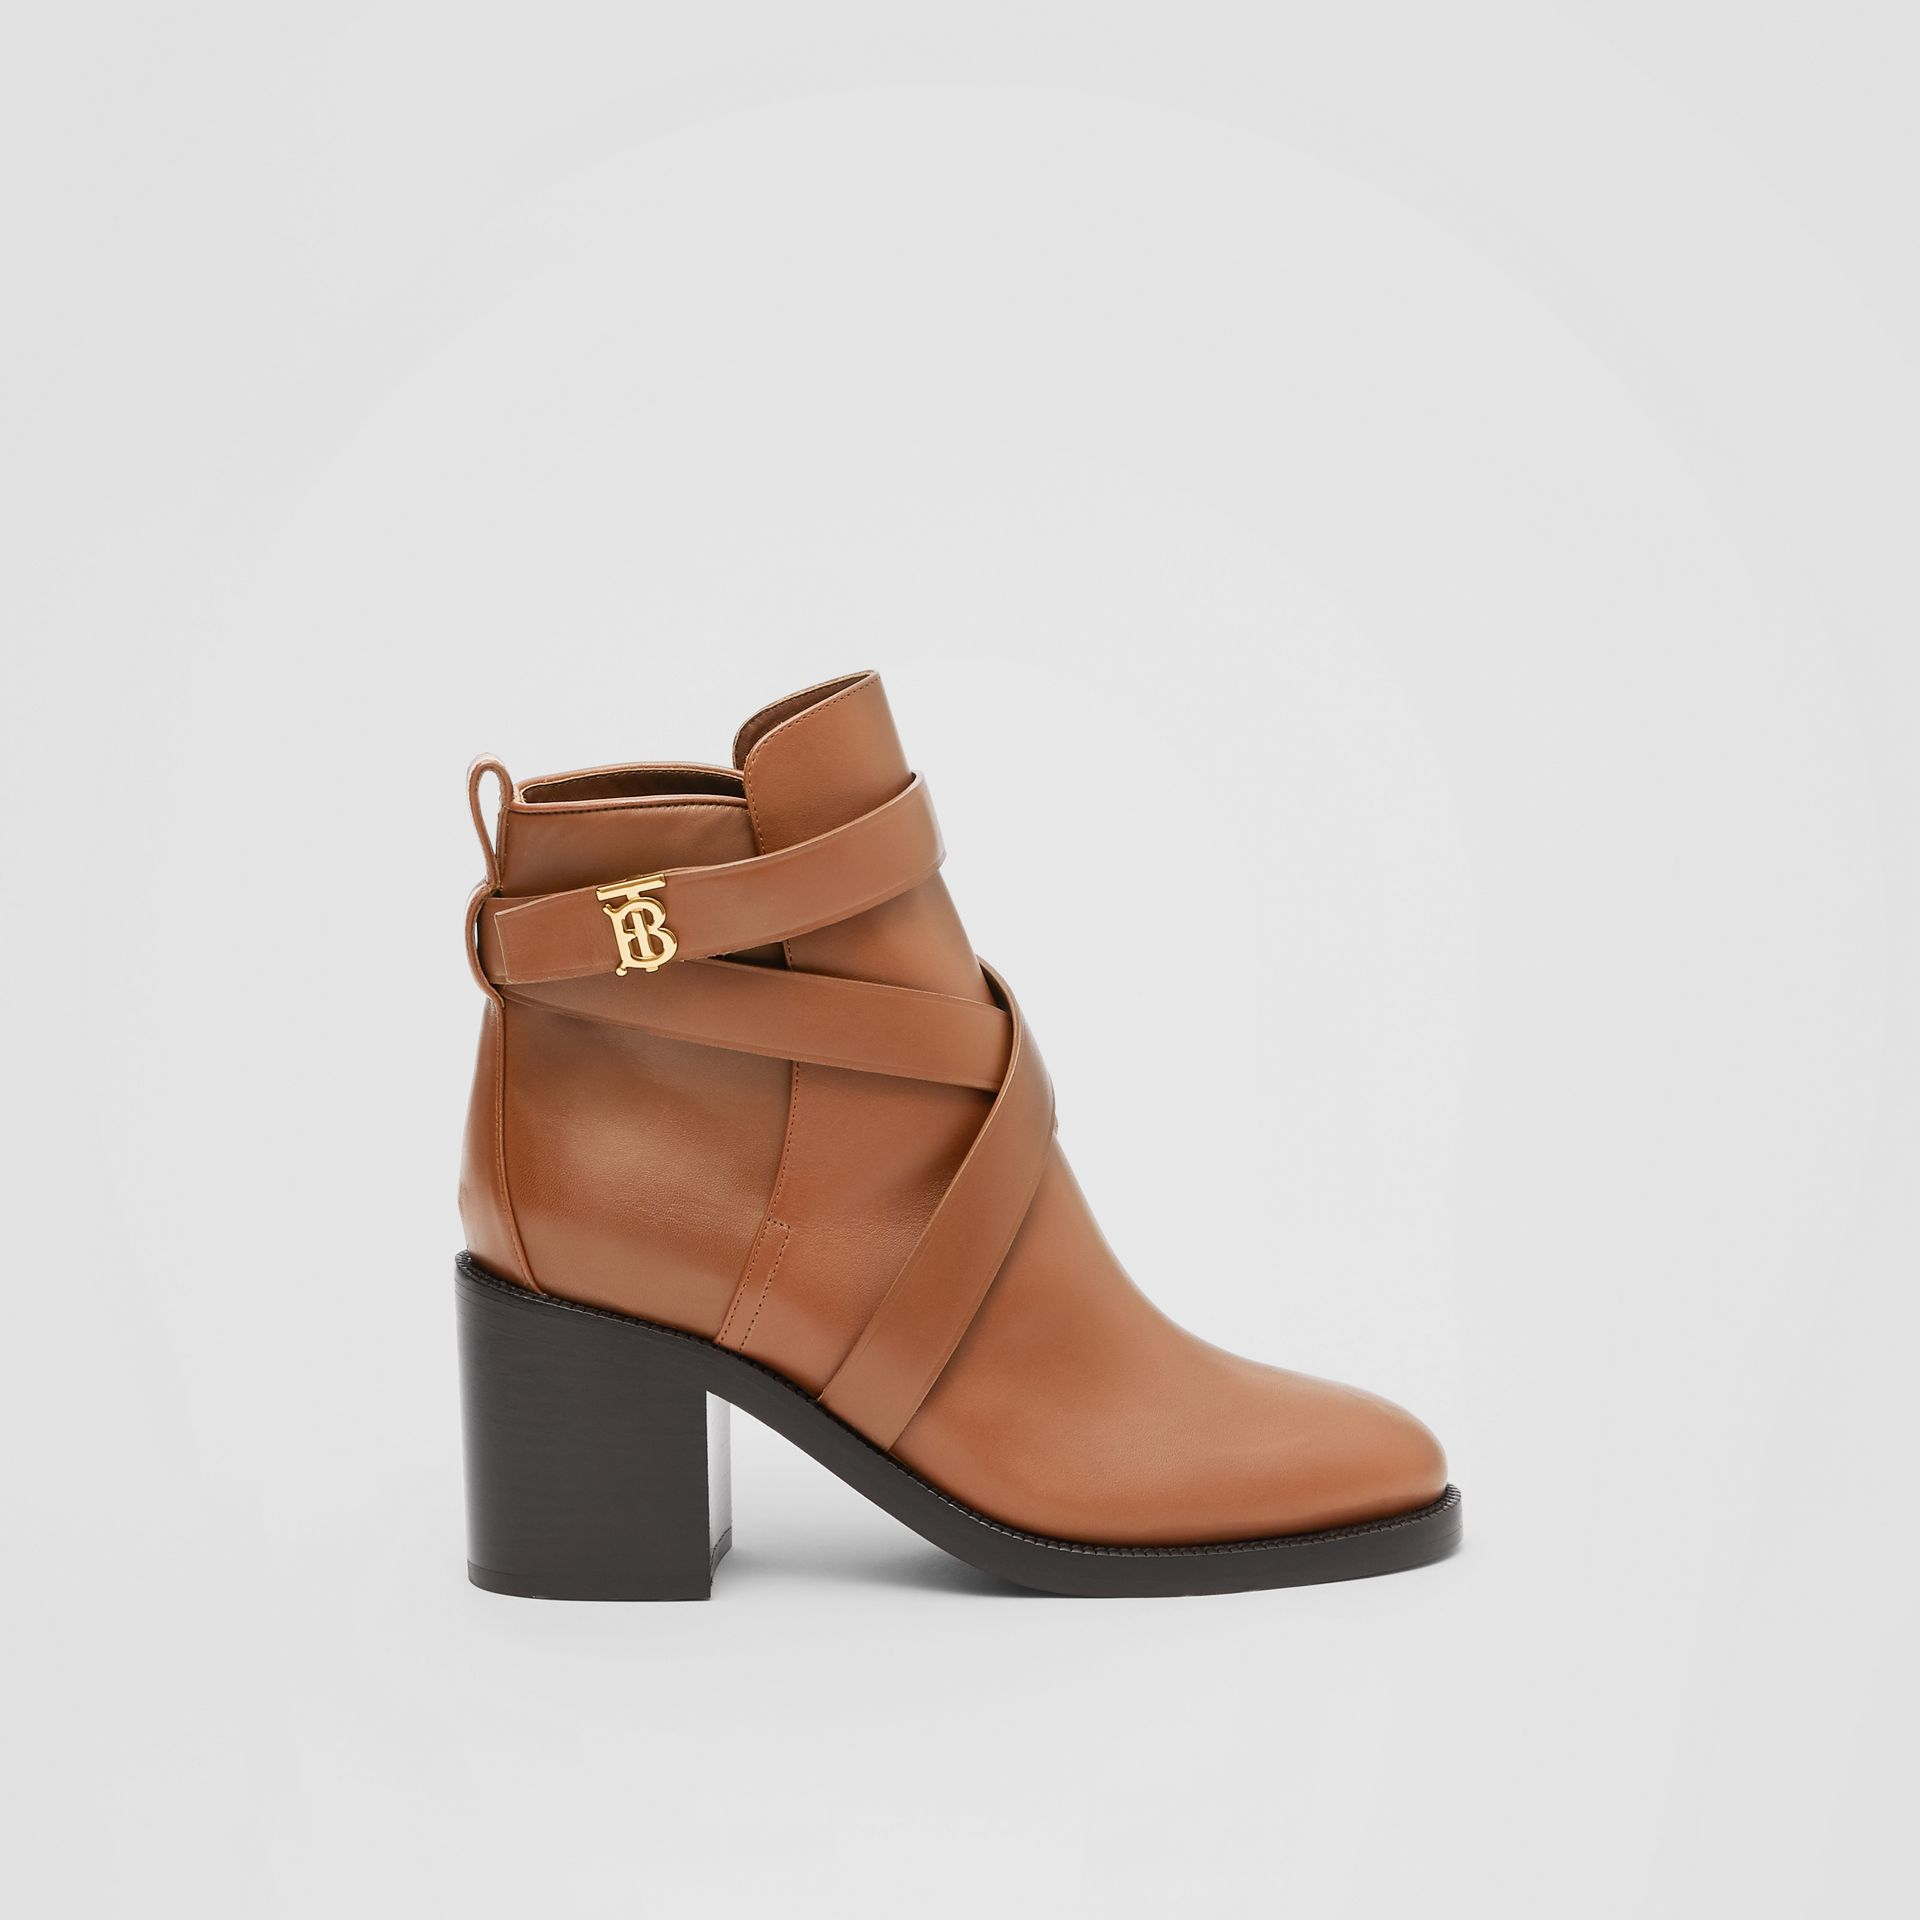 Bottines en cuir Monogram (Hâle) - Femme | Burberry - photo de la galerie 4